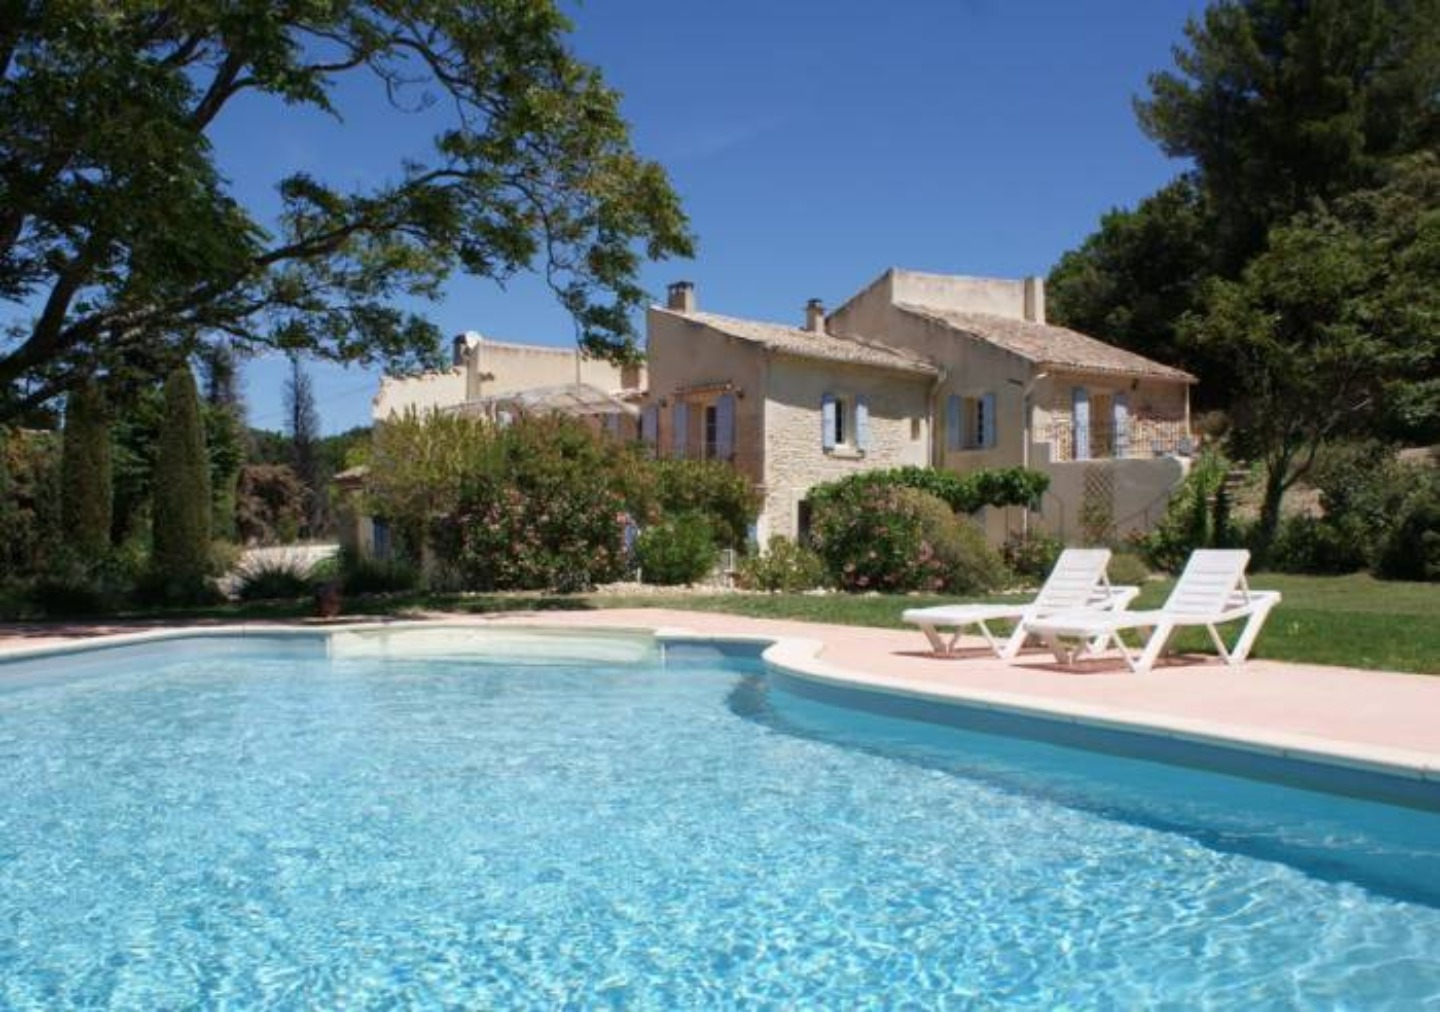 A small house in a pool of water at les romarins.